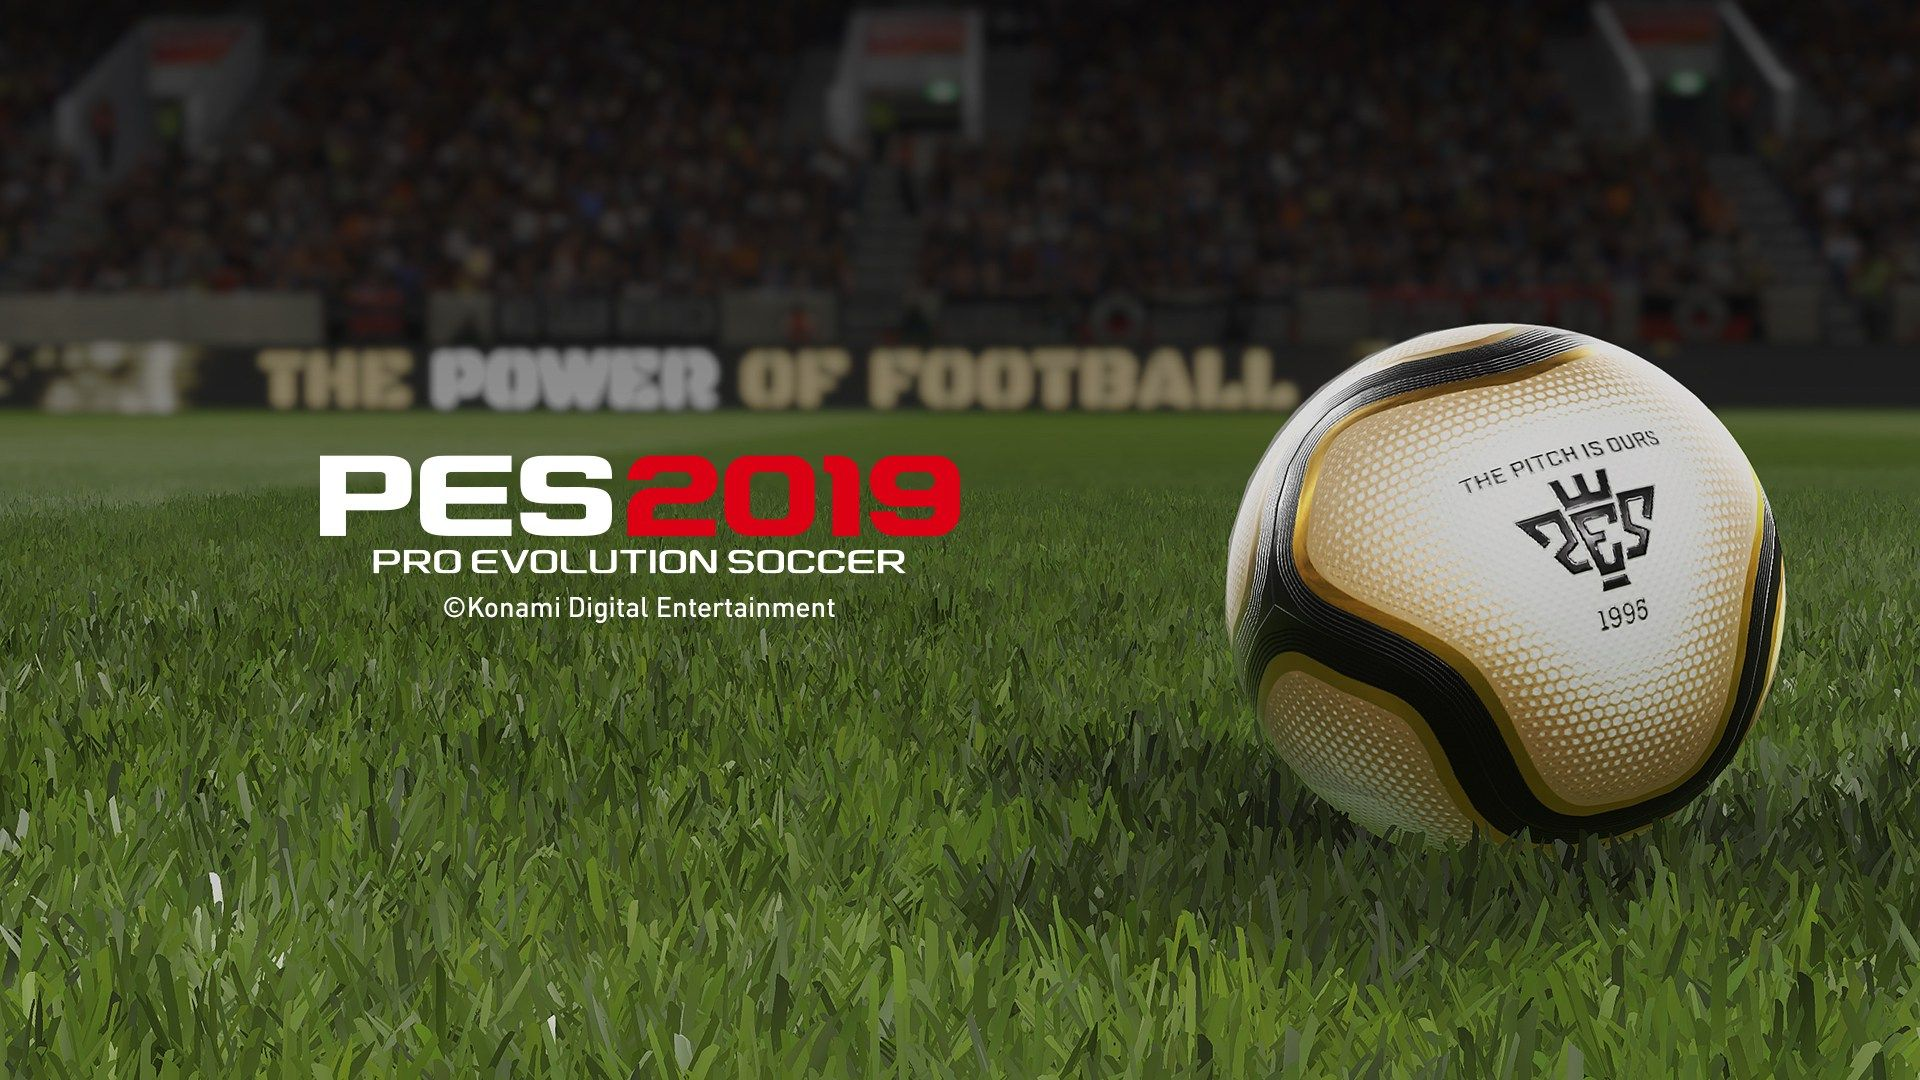 PES 2019 Wallpapers | PES 2019 | Pro evolution soccer, Soccer, Evolution